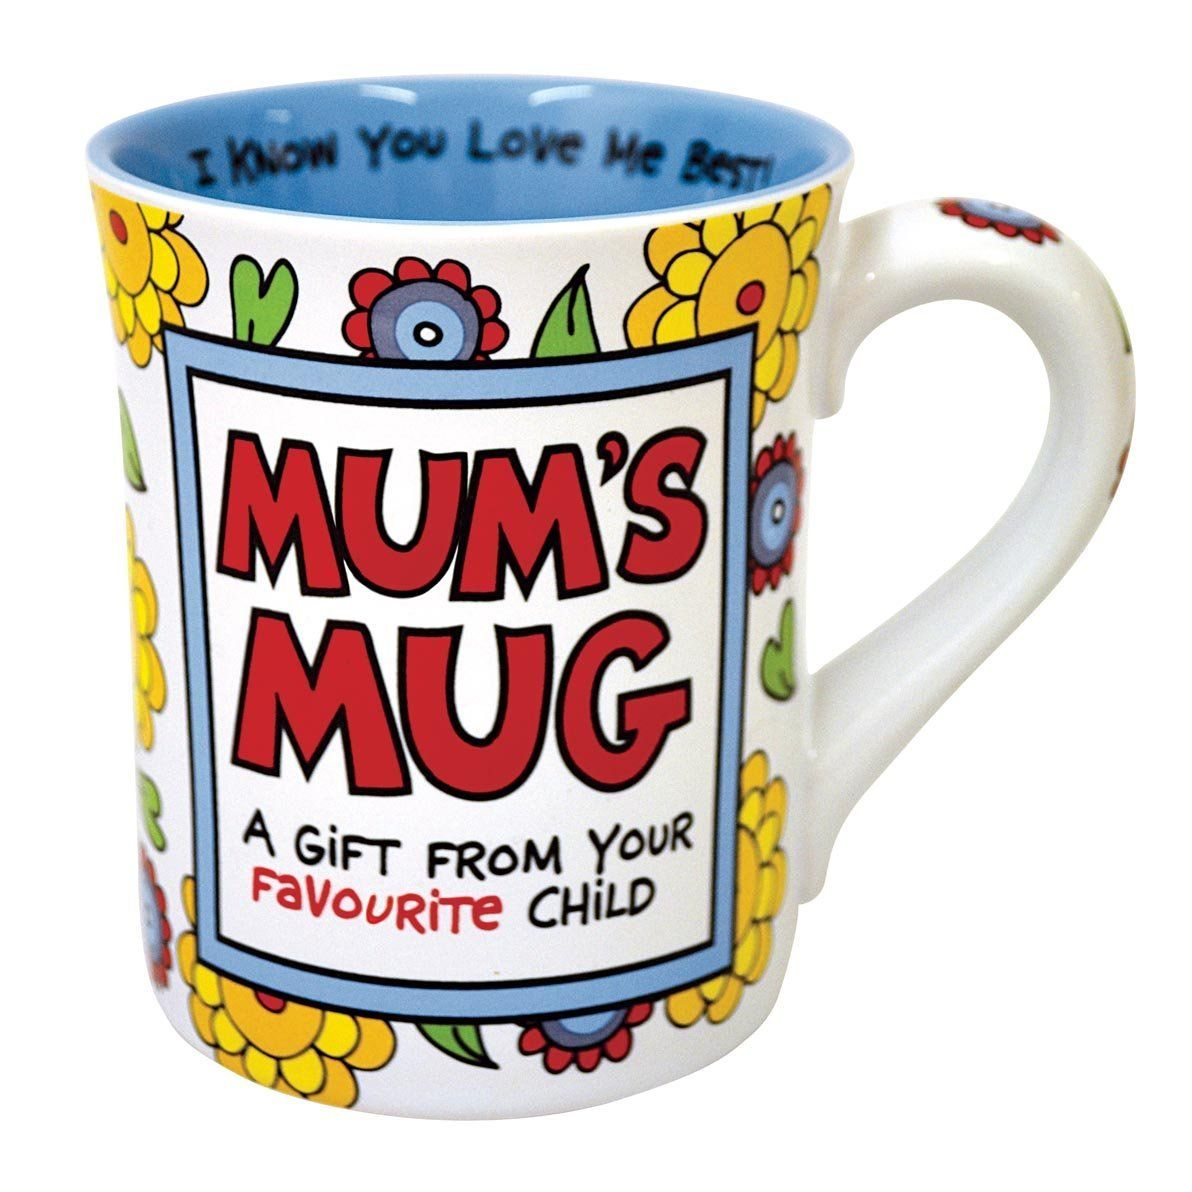 Mug For Mom Reads A Gift From Your Favourite Child From Lorrie Veasey And Our Name Is Mud Mom Mug Mugs Stoneware Mugs